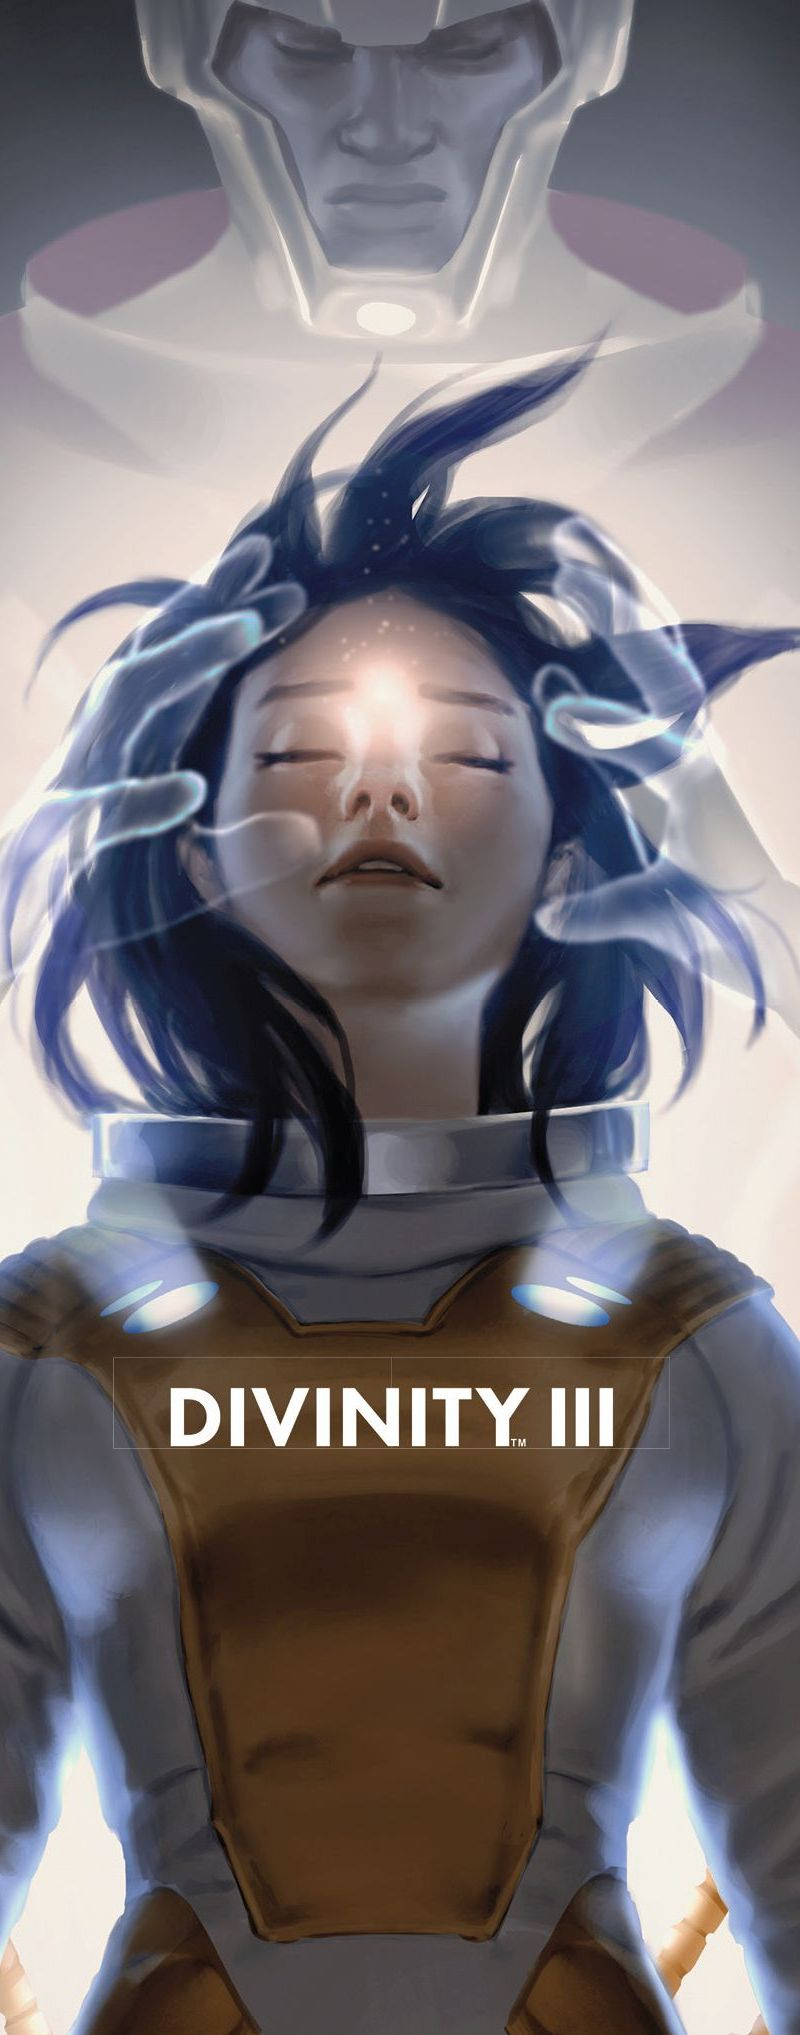 Divinity III 04 Featured